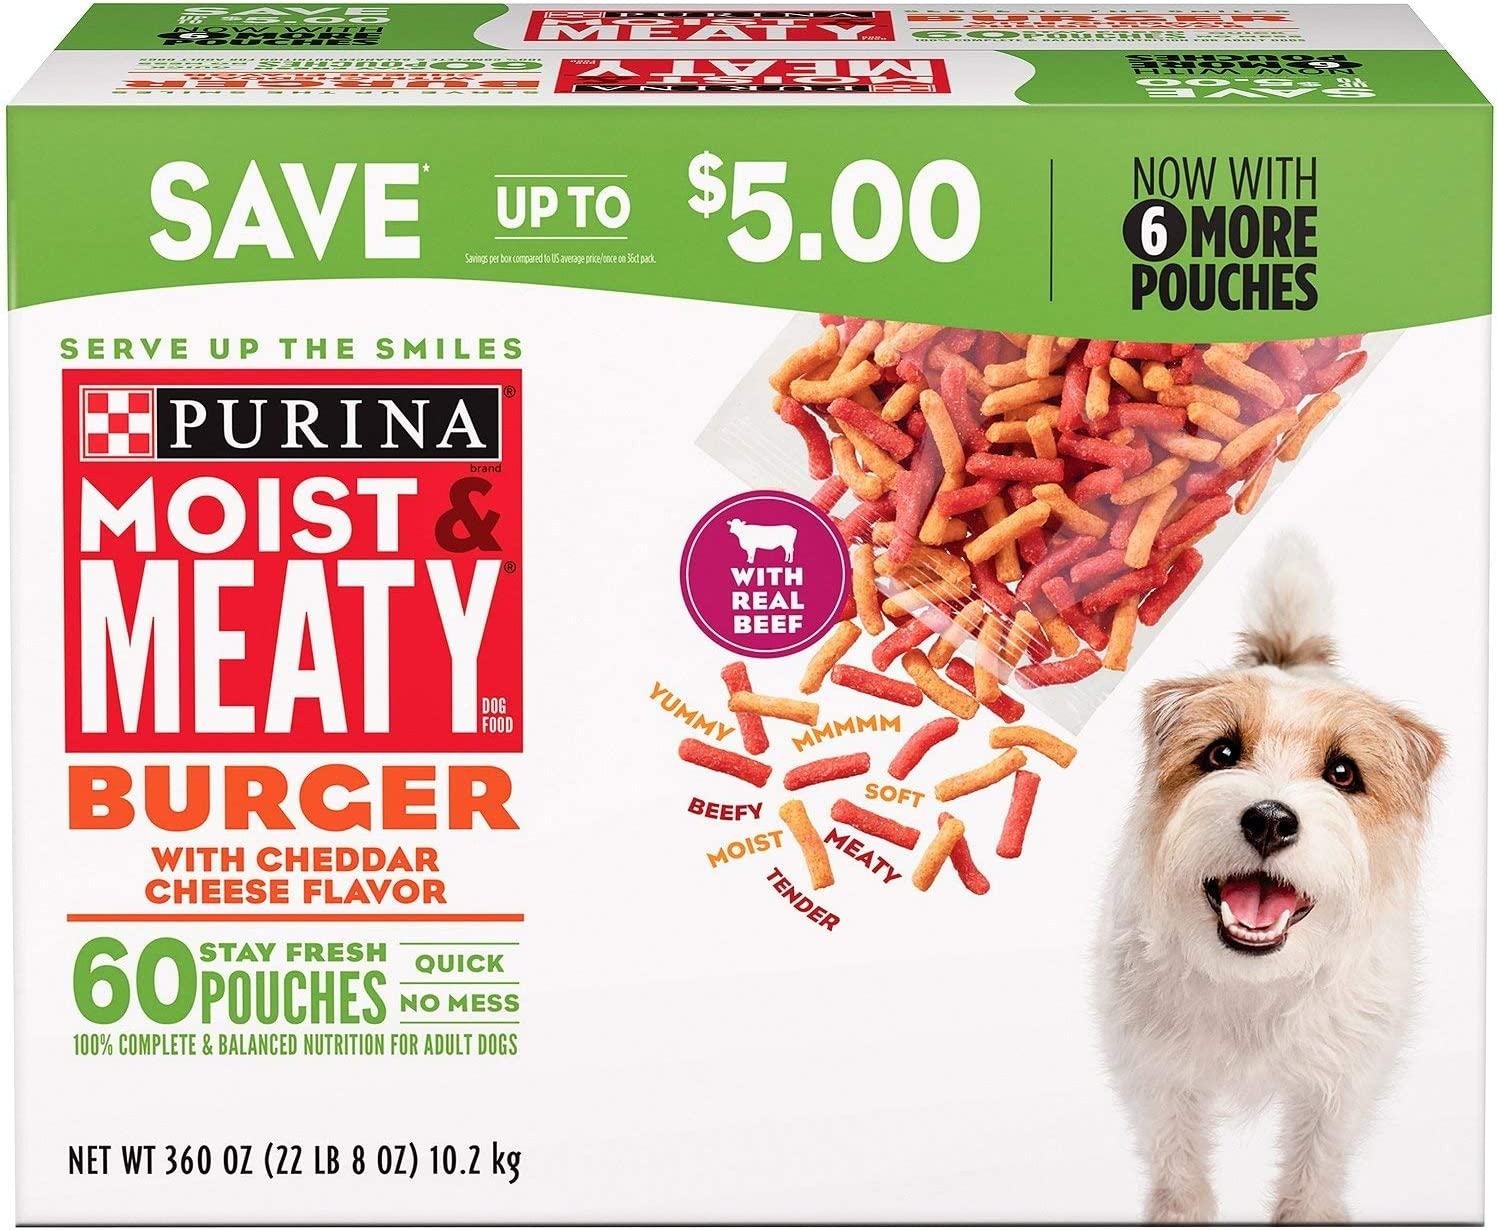 Purina Moist & Meaty Dog Food, Burger with Cheddar Cheese Flavor